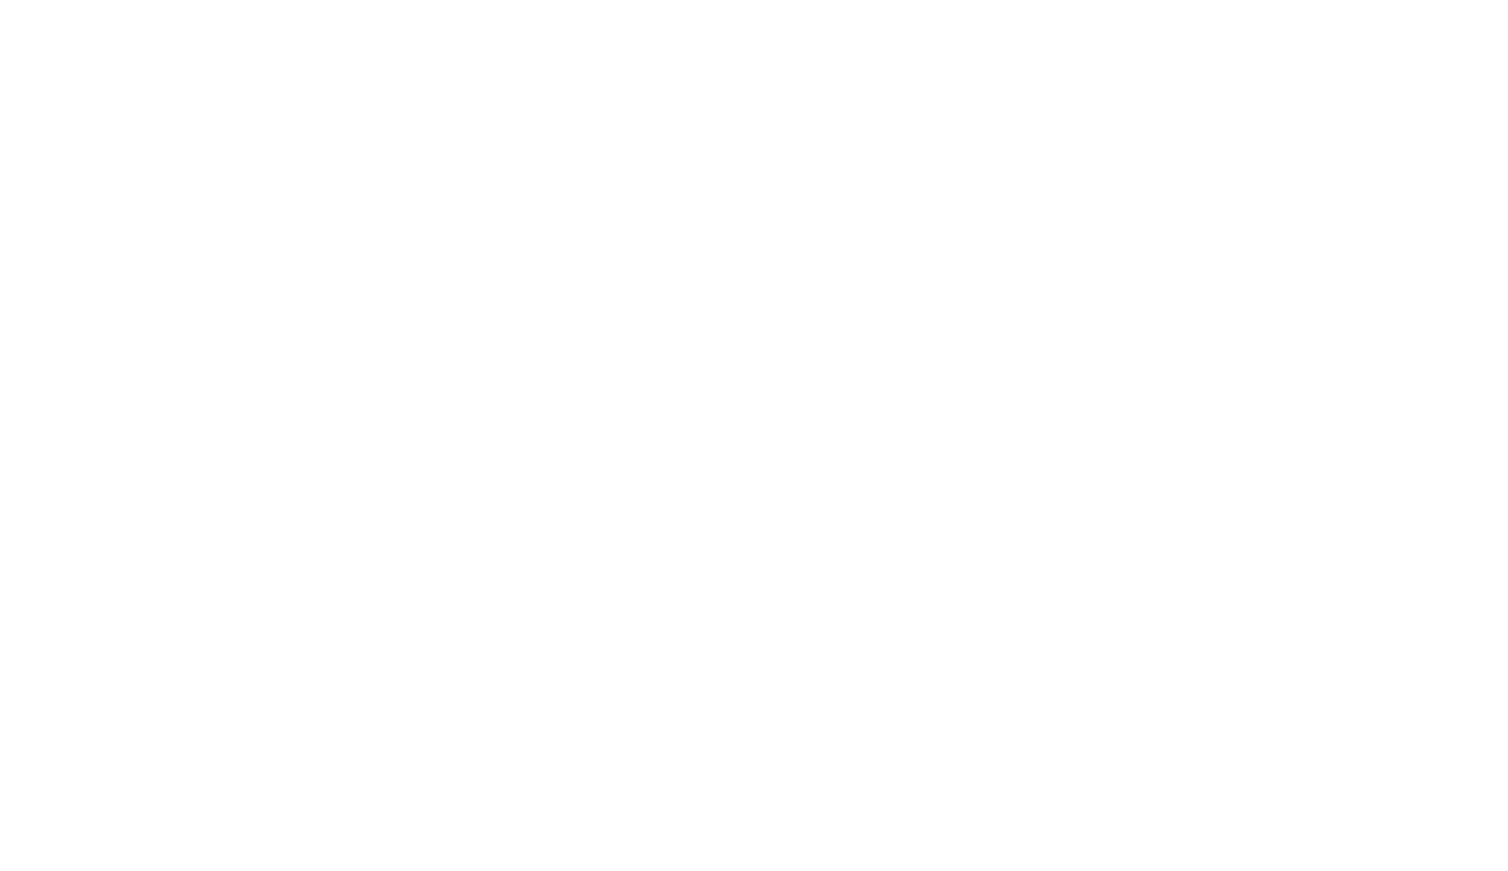 Taica Technology